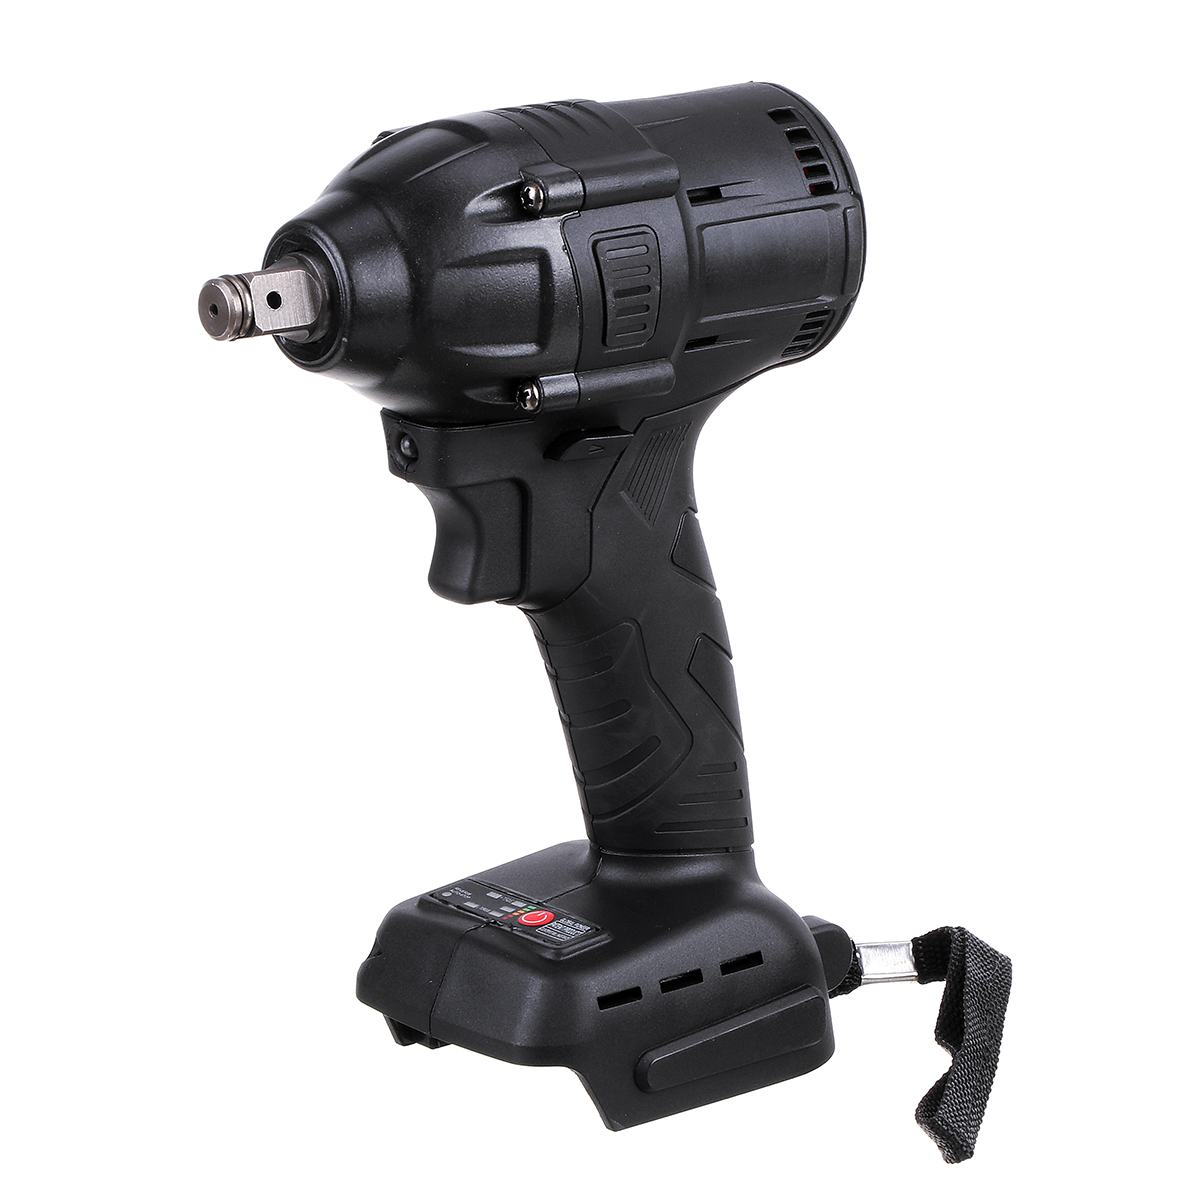 Tools : Doersupp 18V 500W 630N m  Li-Ion Cordless Impact Wrench Driver 1 2 Electric Wrench Replacement for Makita 18V Battery